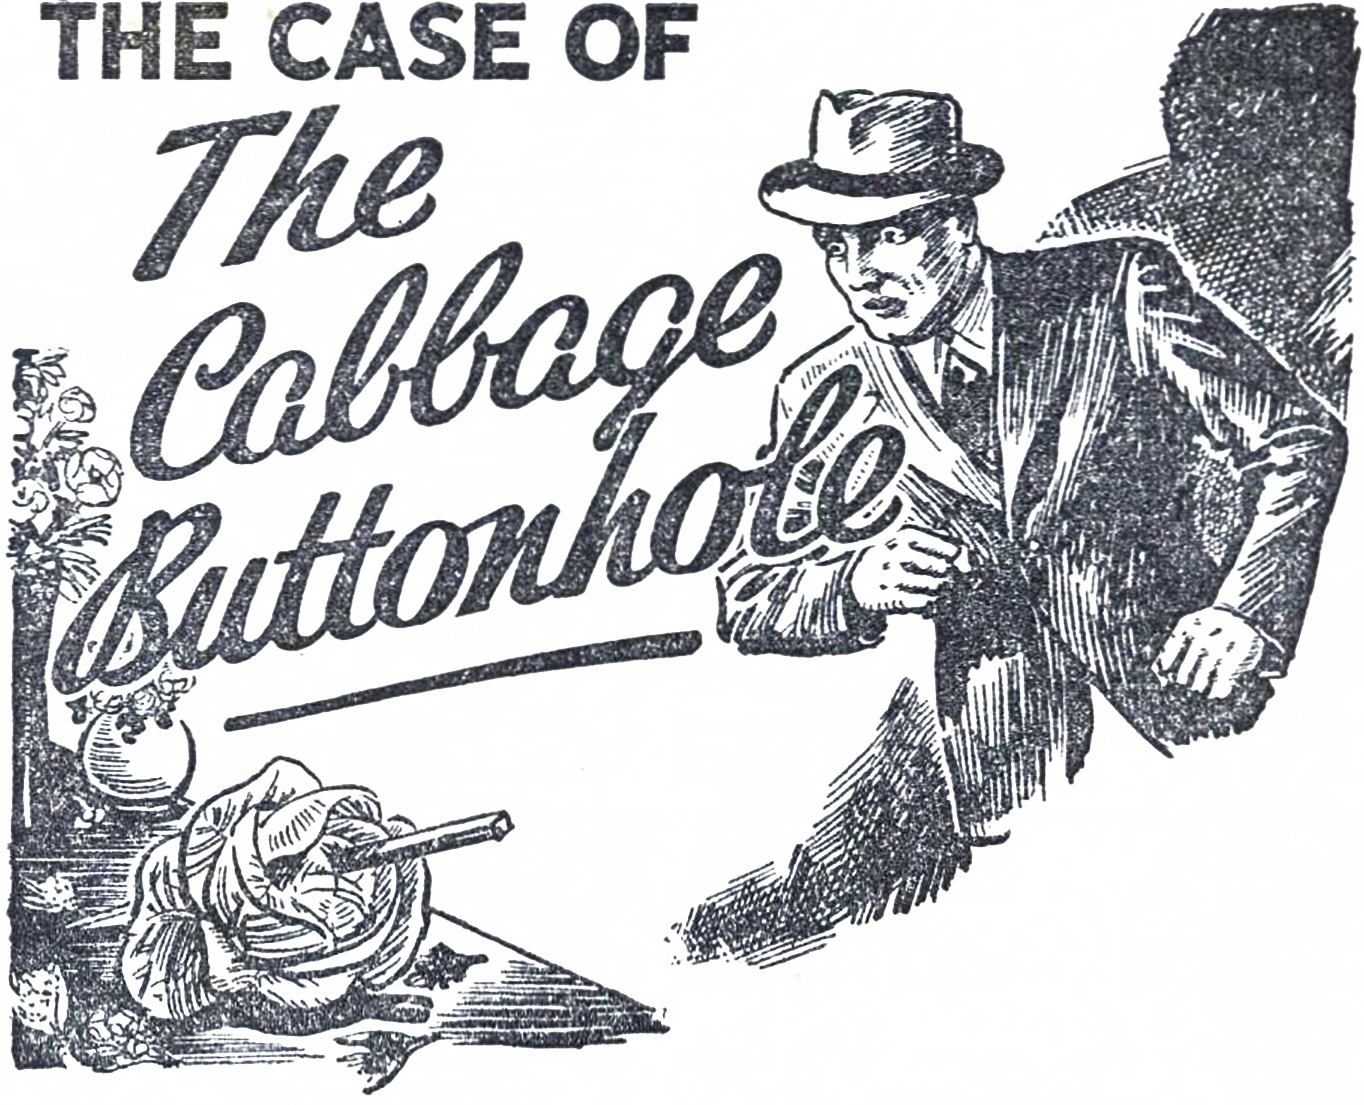 The Case of the Cabbage Buttonhole by